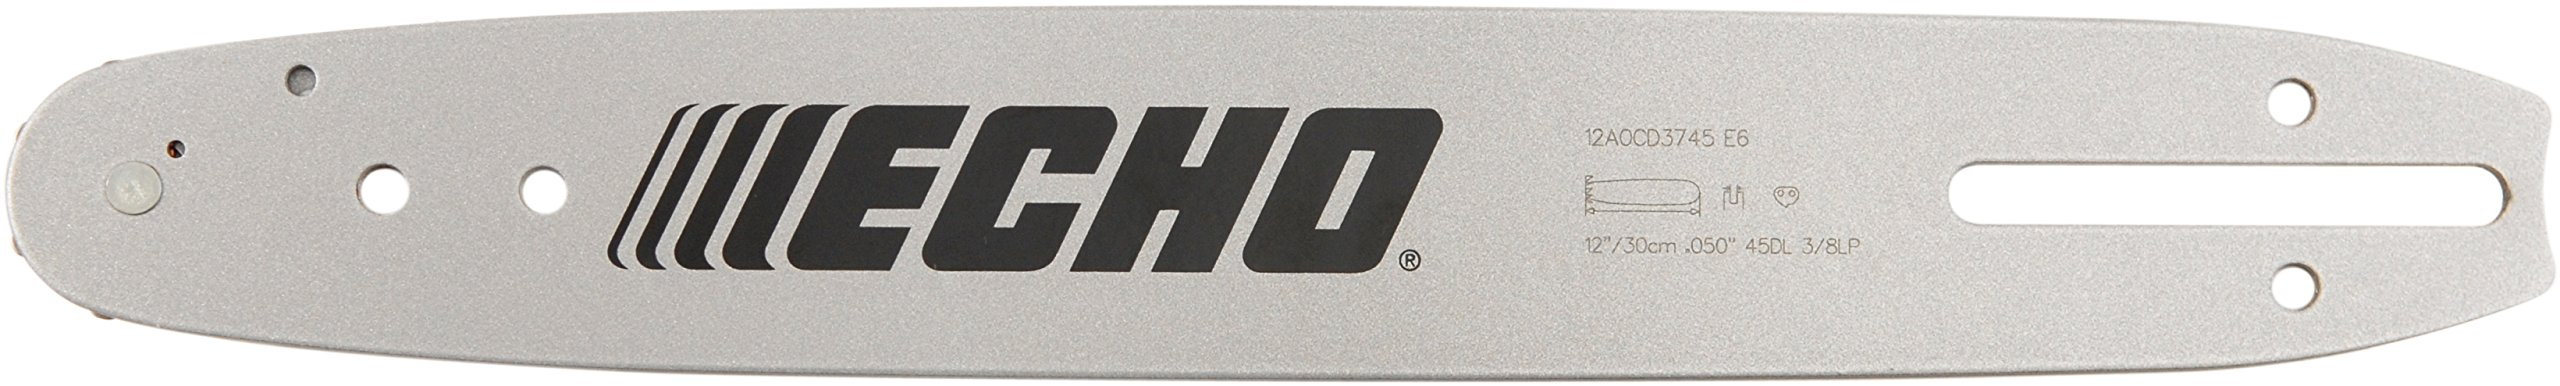 Replacement Bar, 12 in.L, 45 Links by Echo